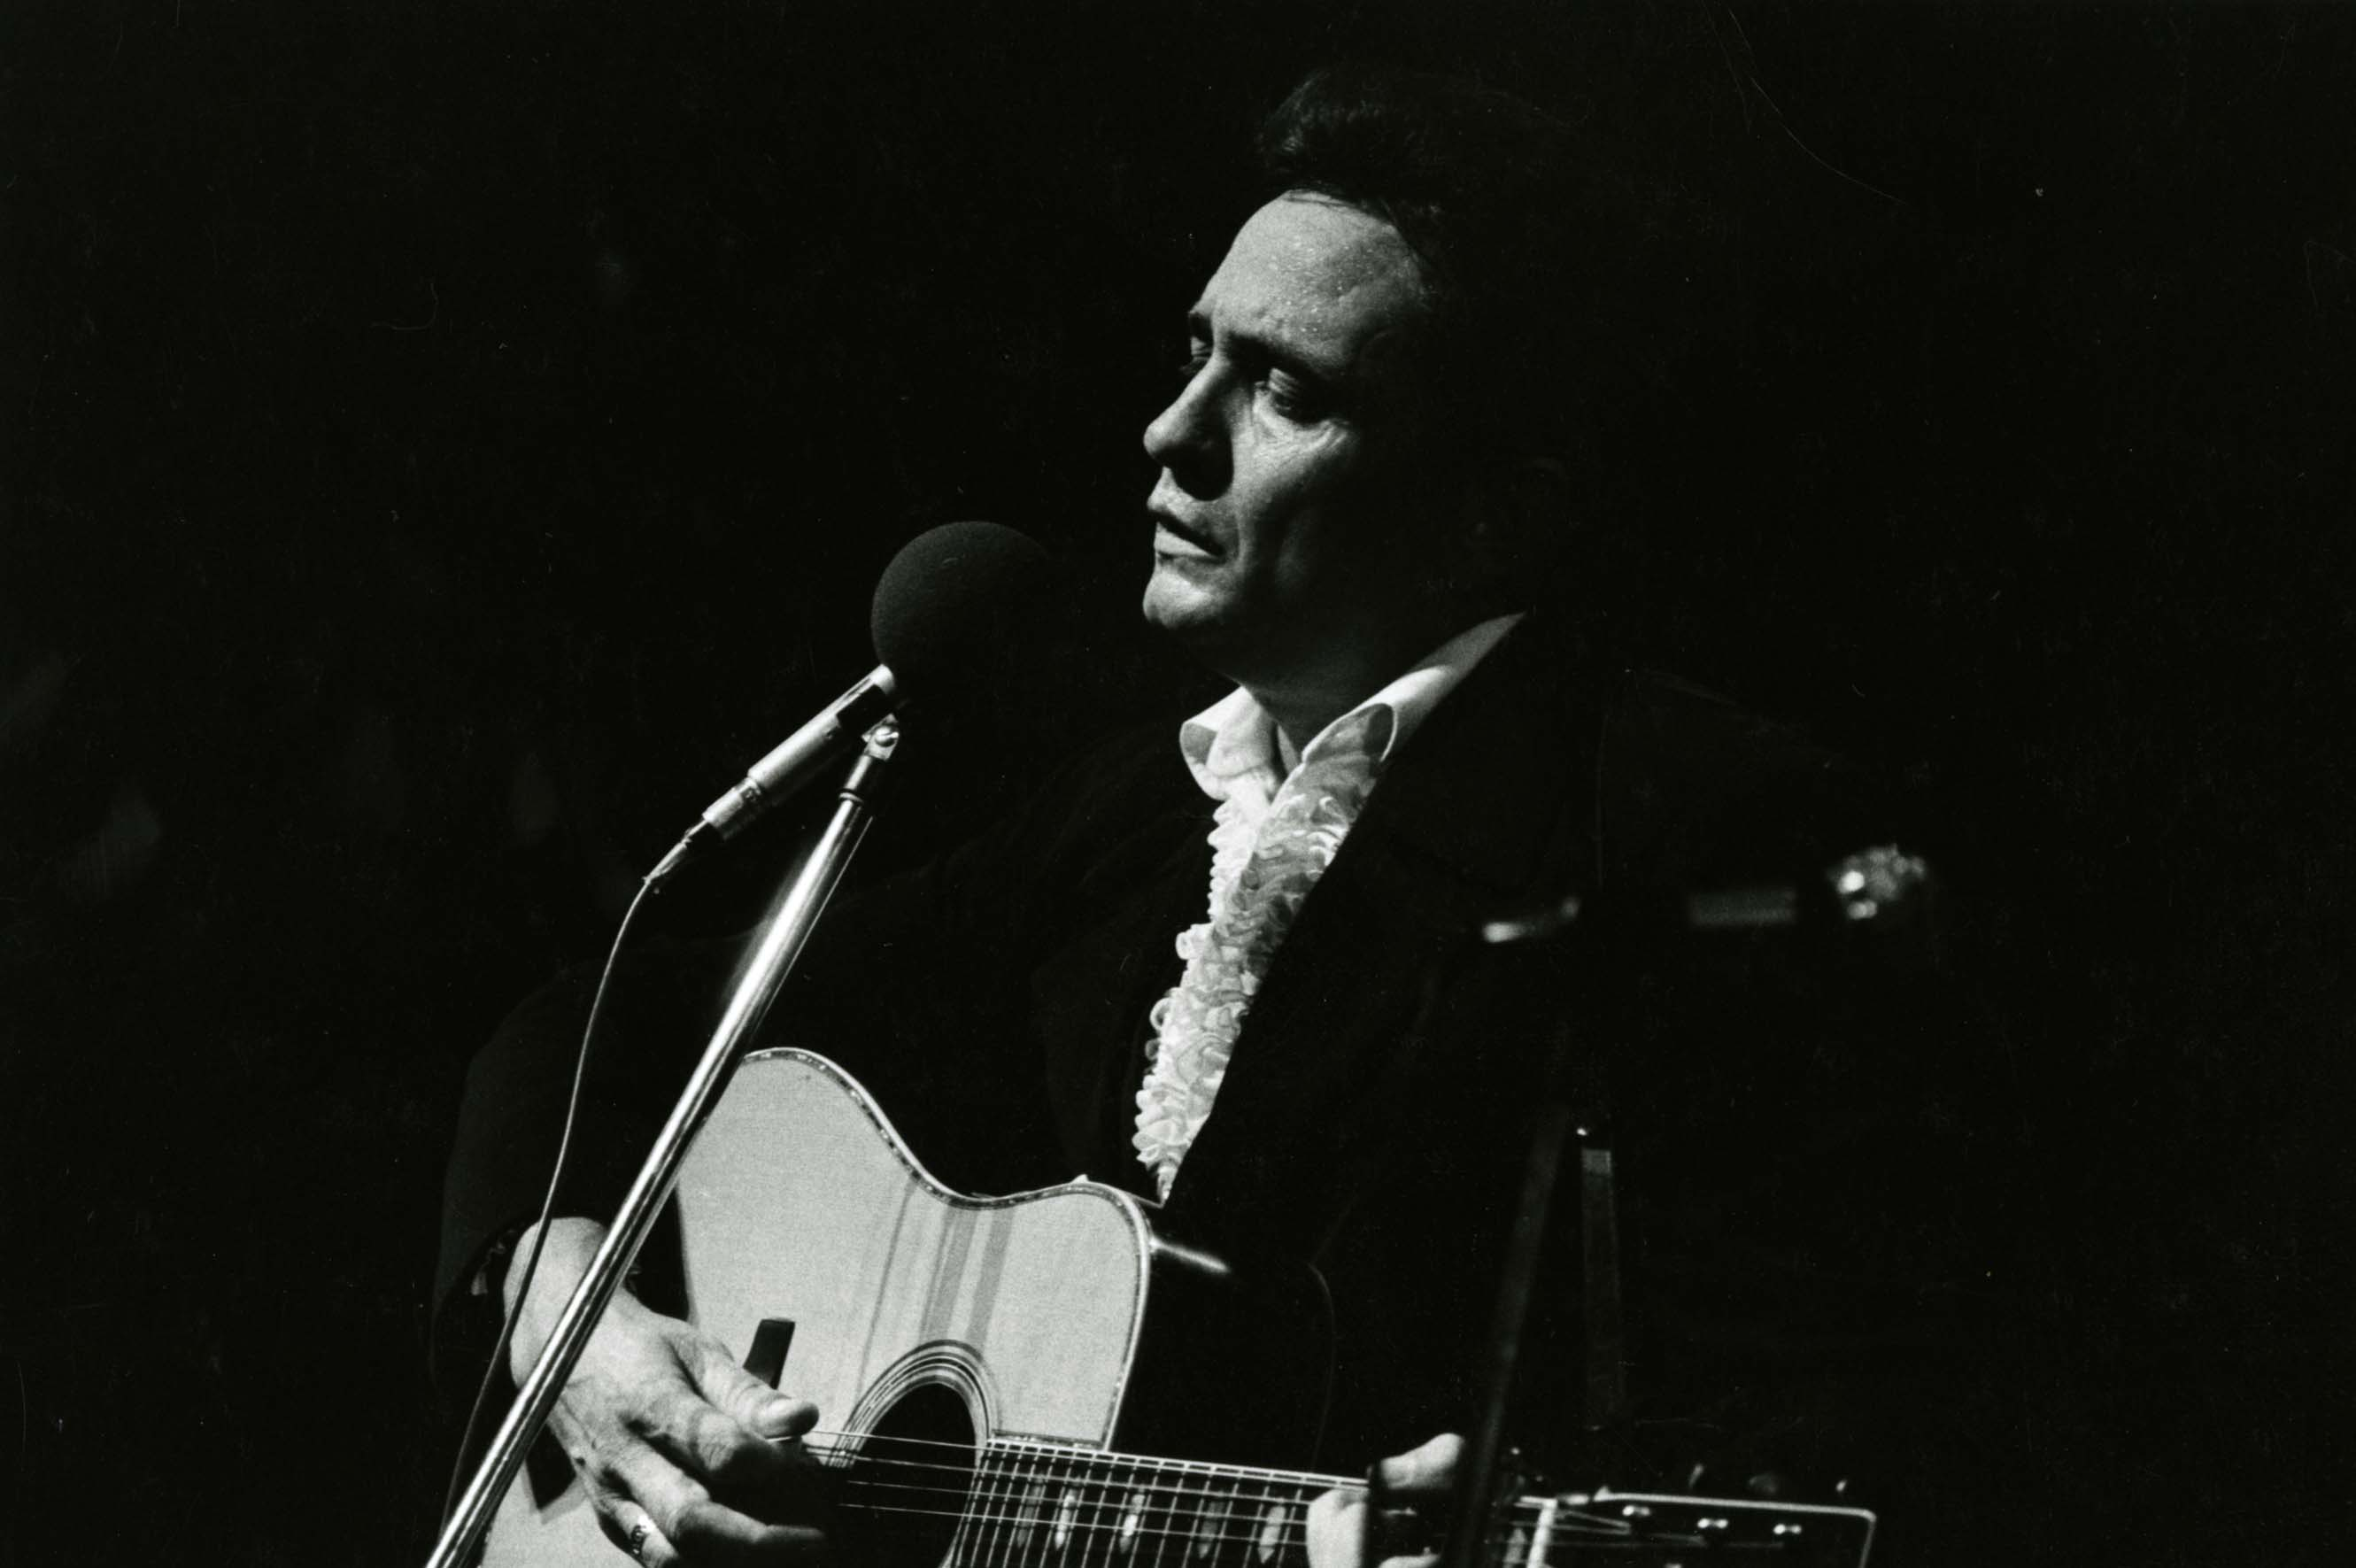 Johnny Cash performance photograph